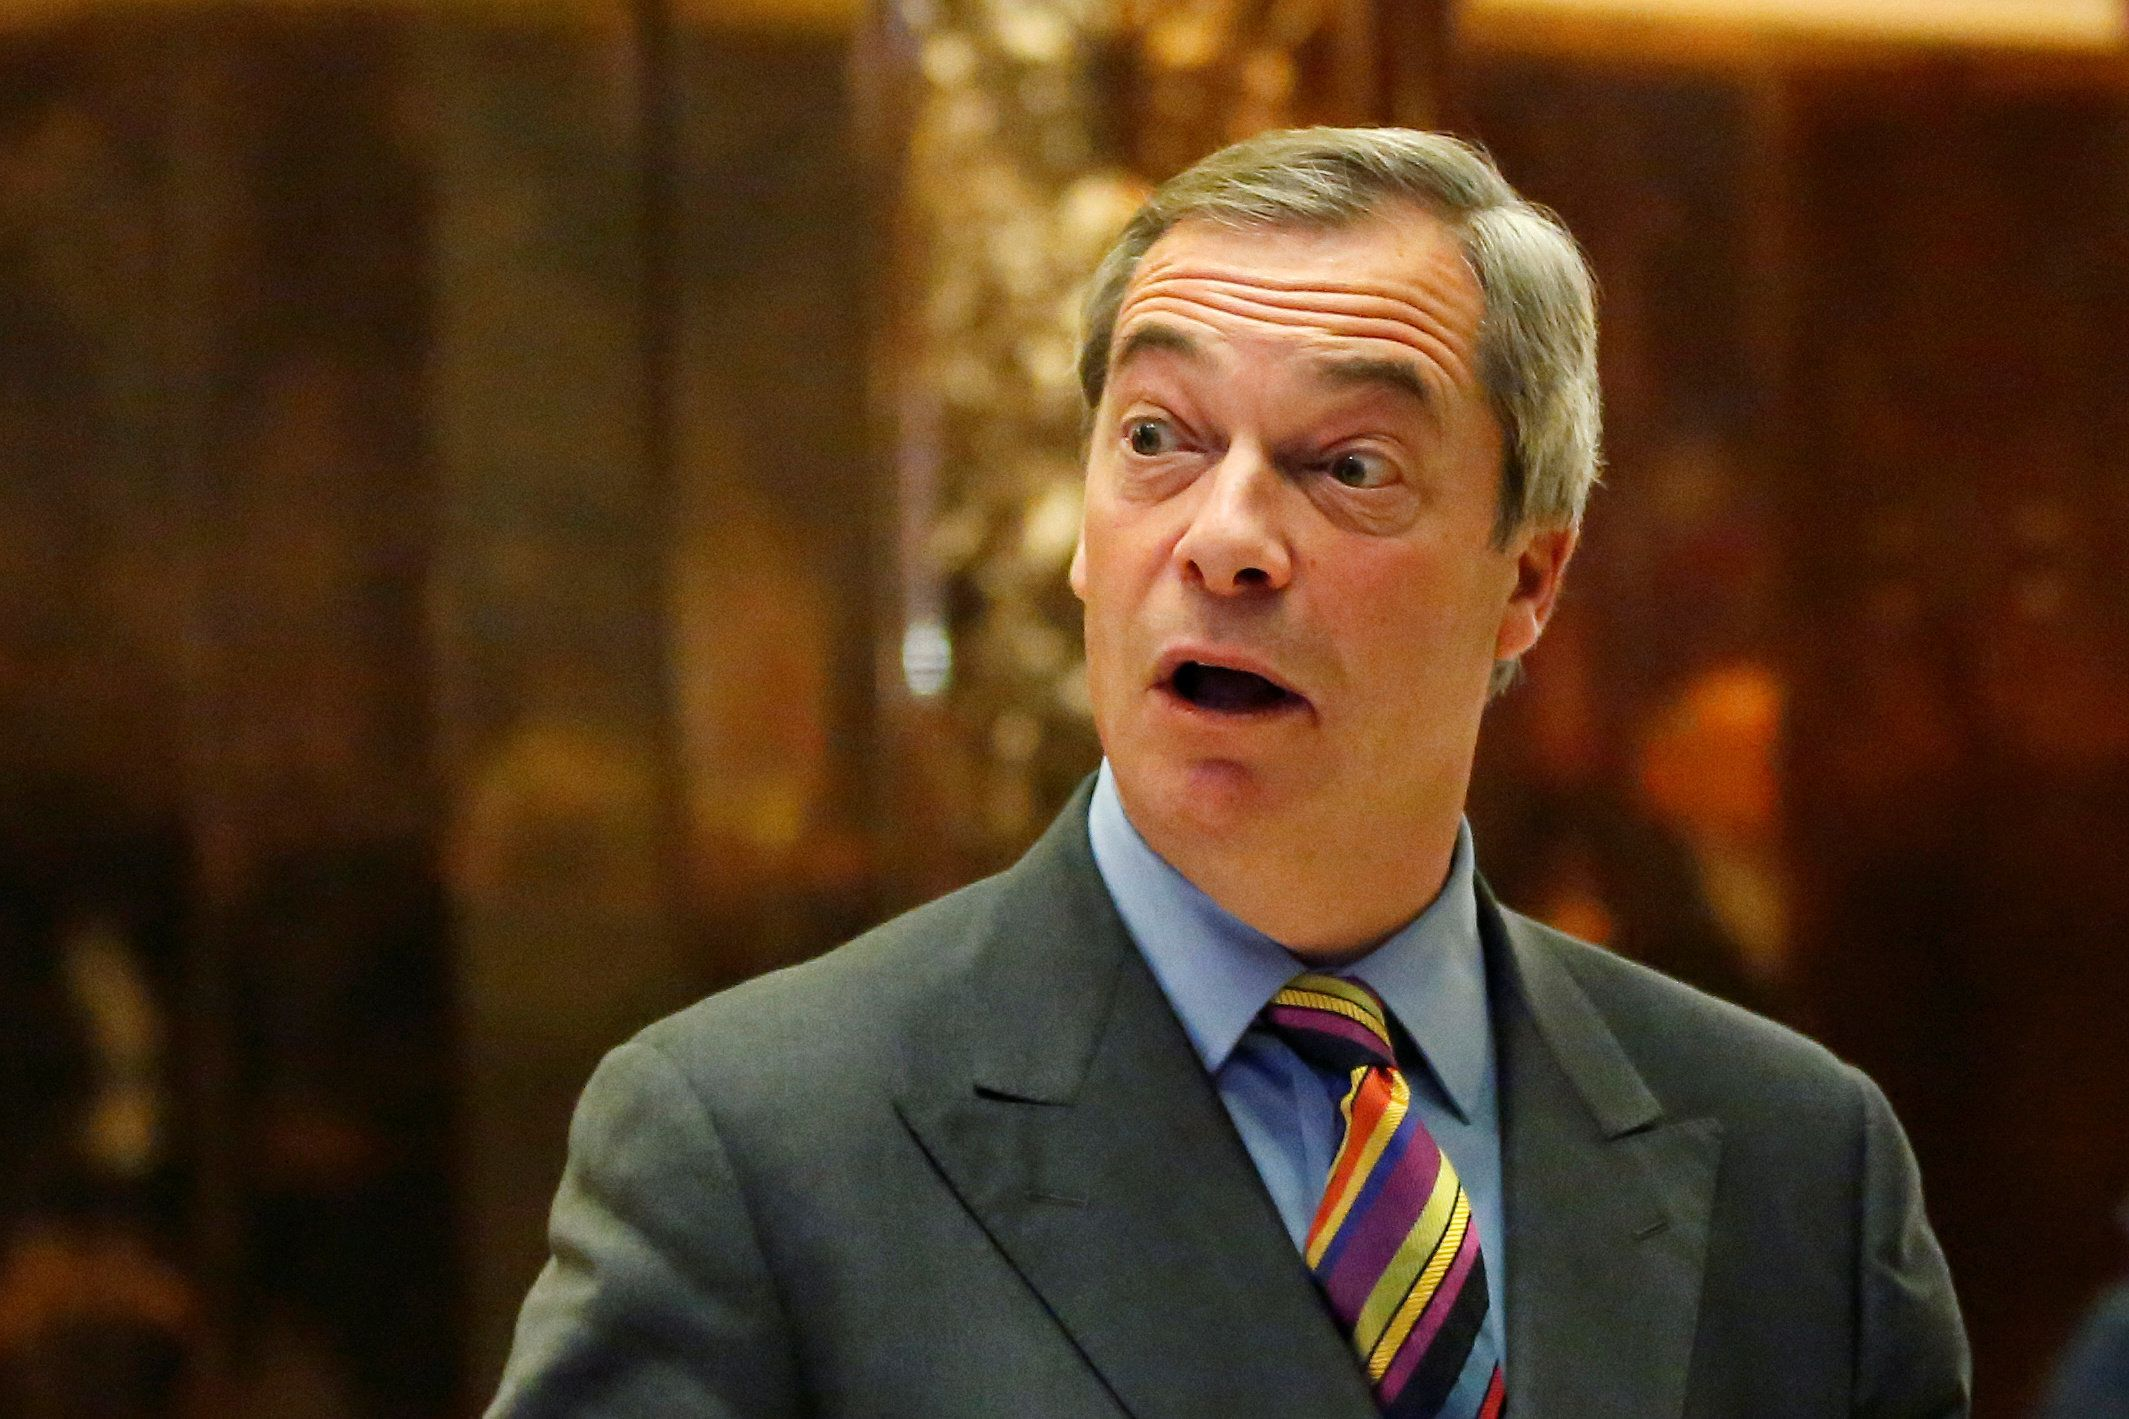 Nigel Farage Says Claims He Is 'Person Of Interest' In FBI Trump/Russia Probe Are